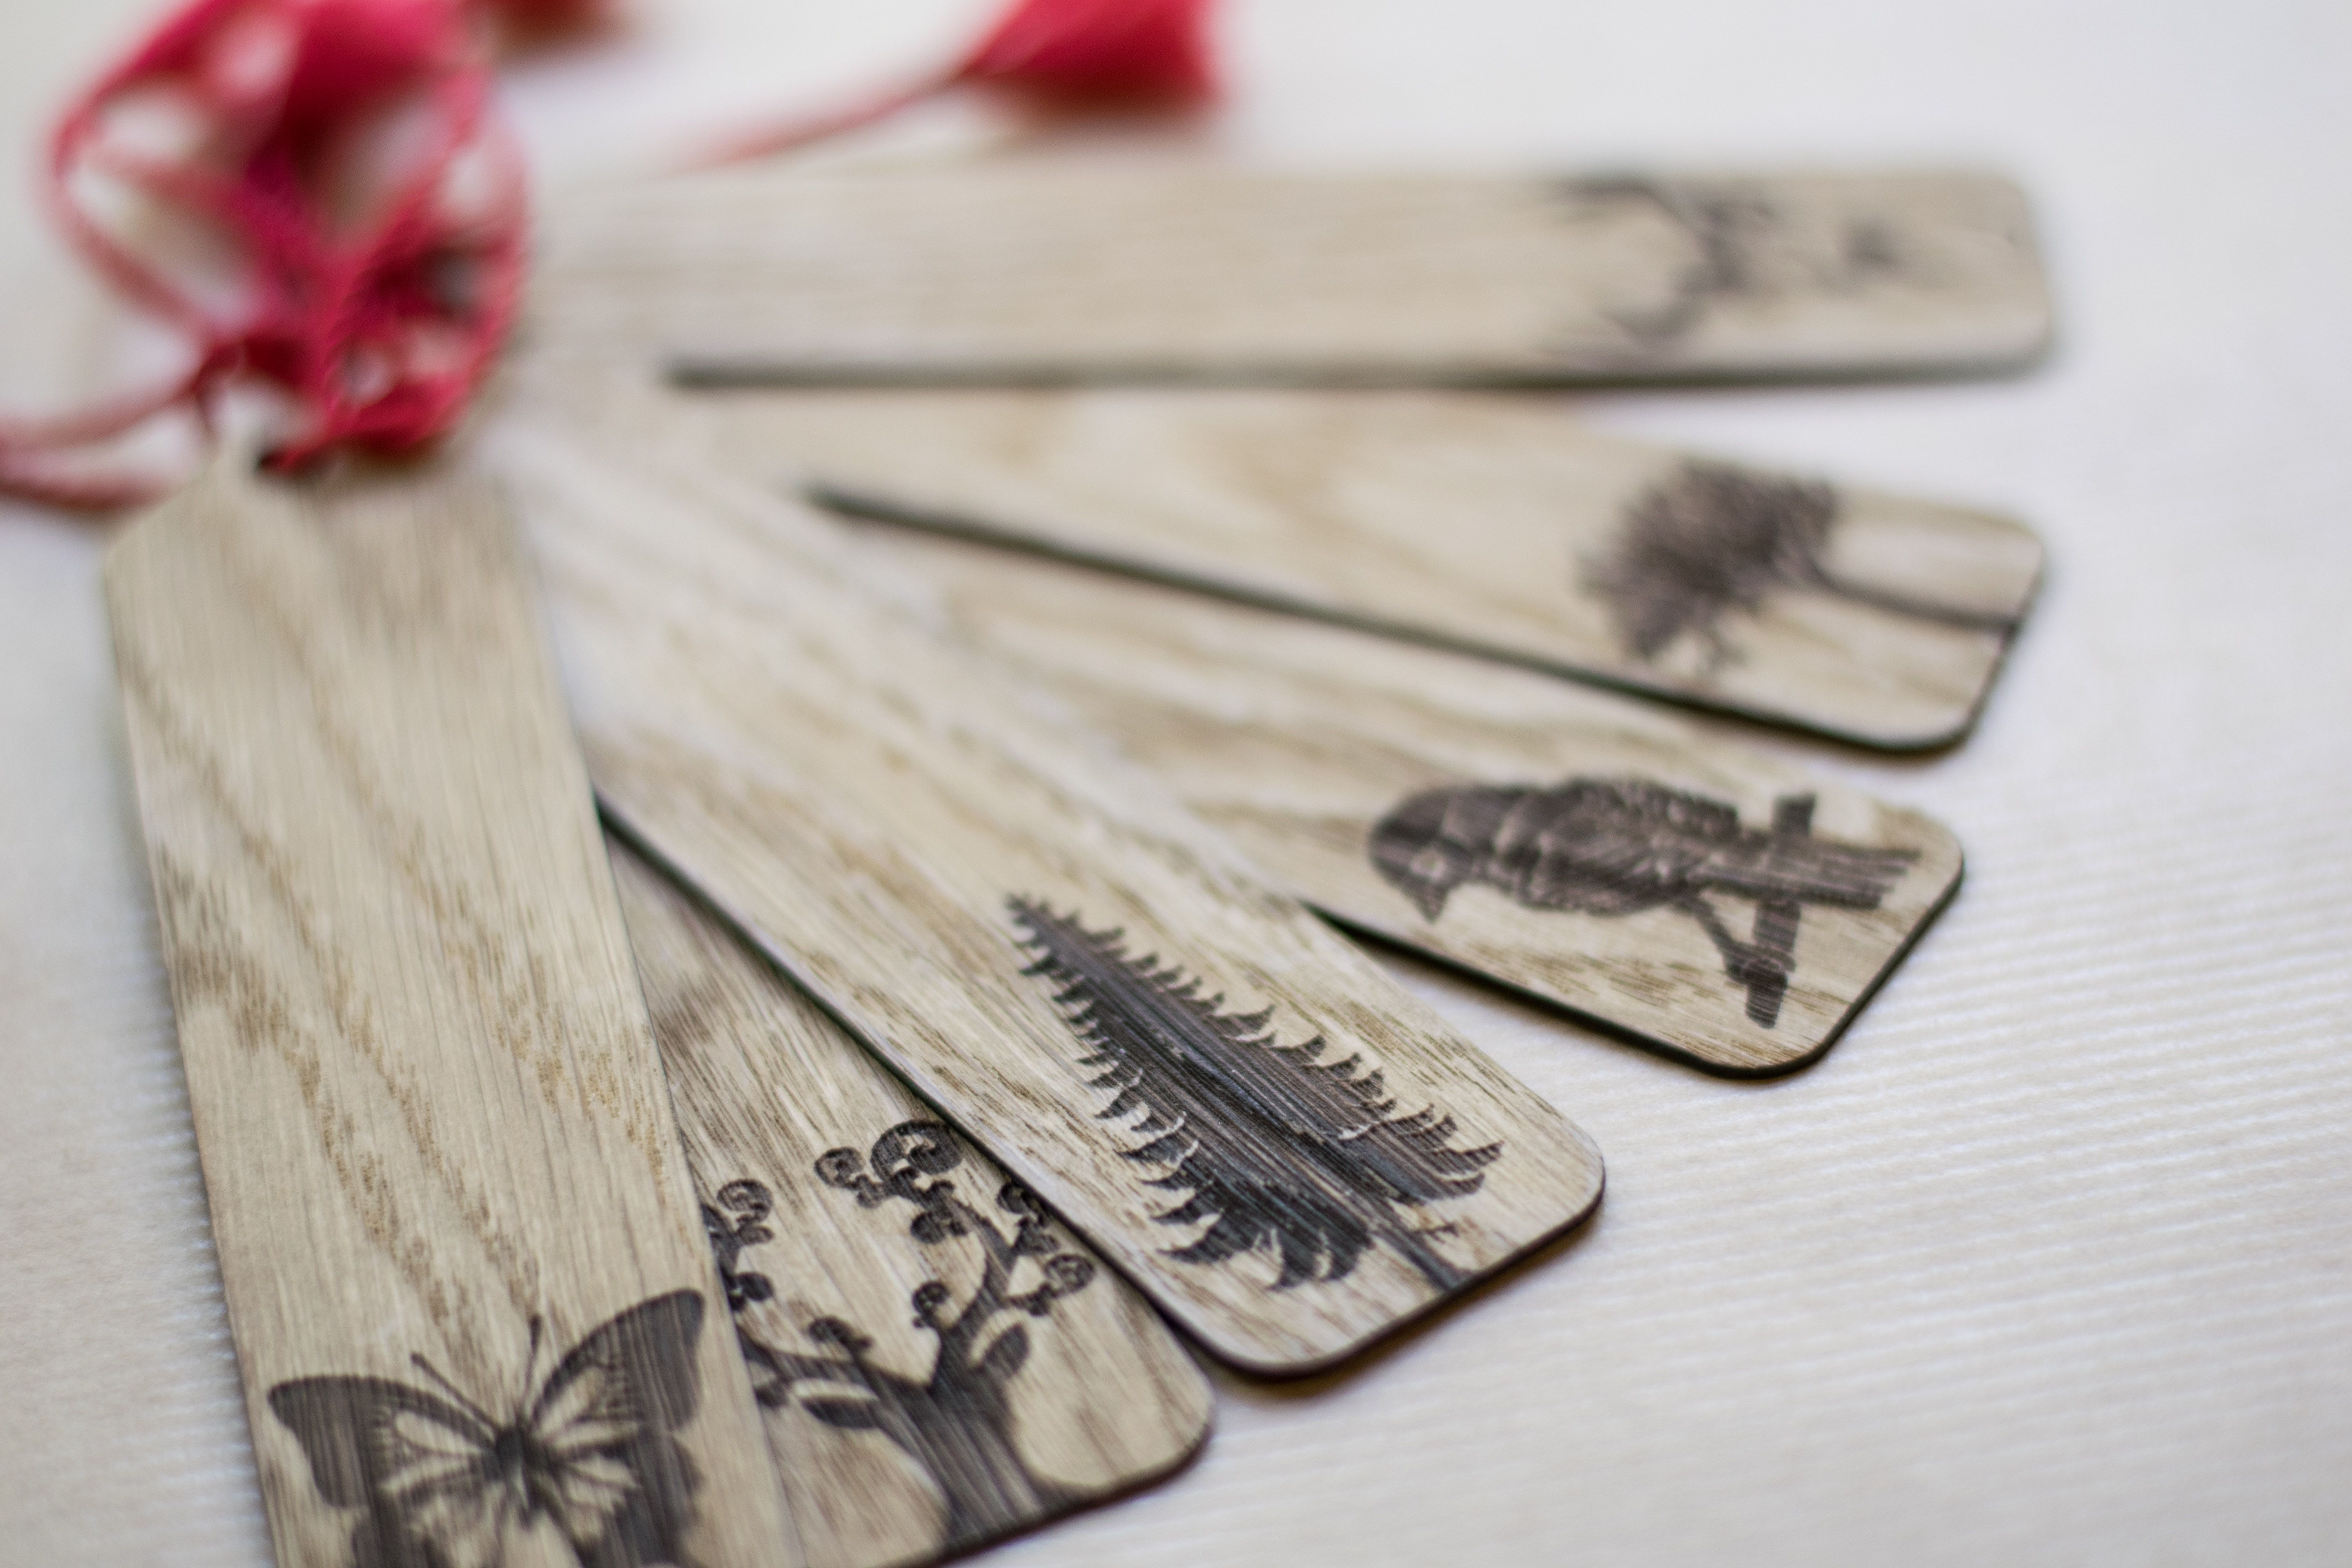 Beautiful oak tree bookmarks with laser engraved silhouettes of nature.